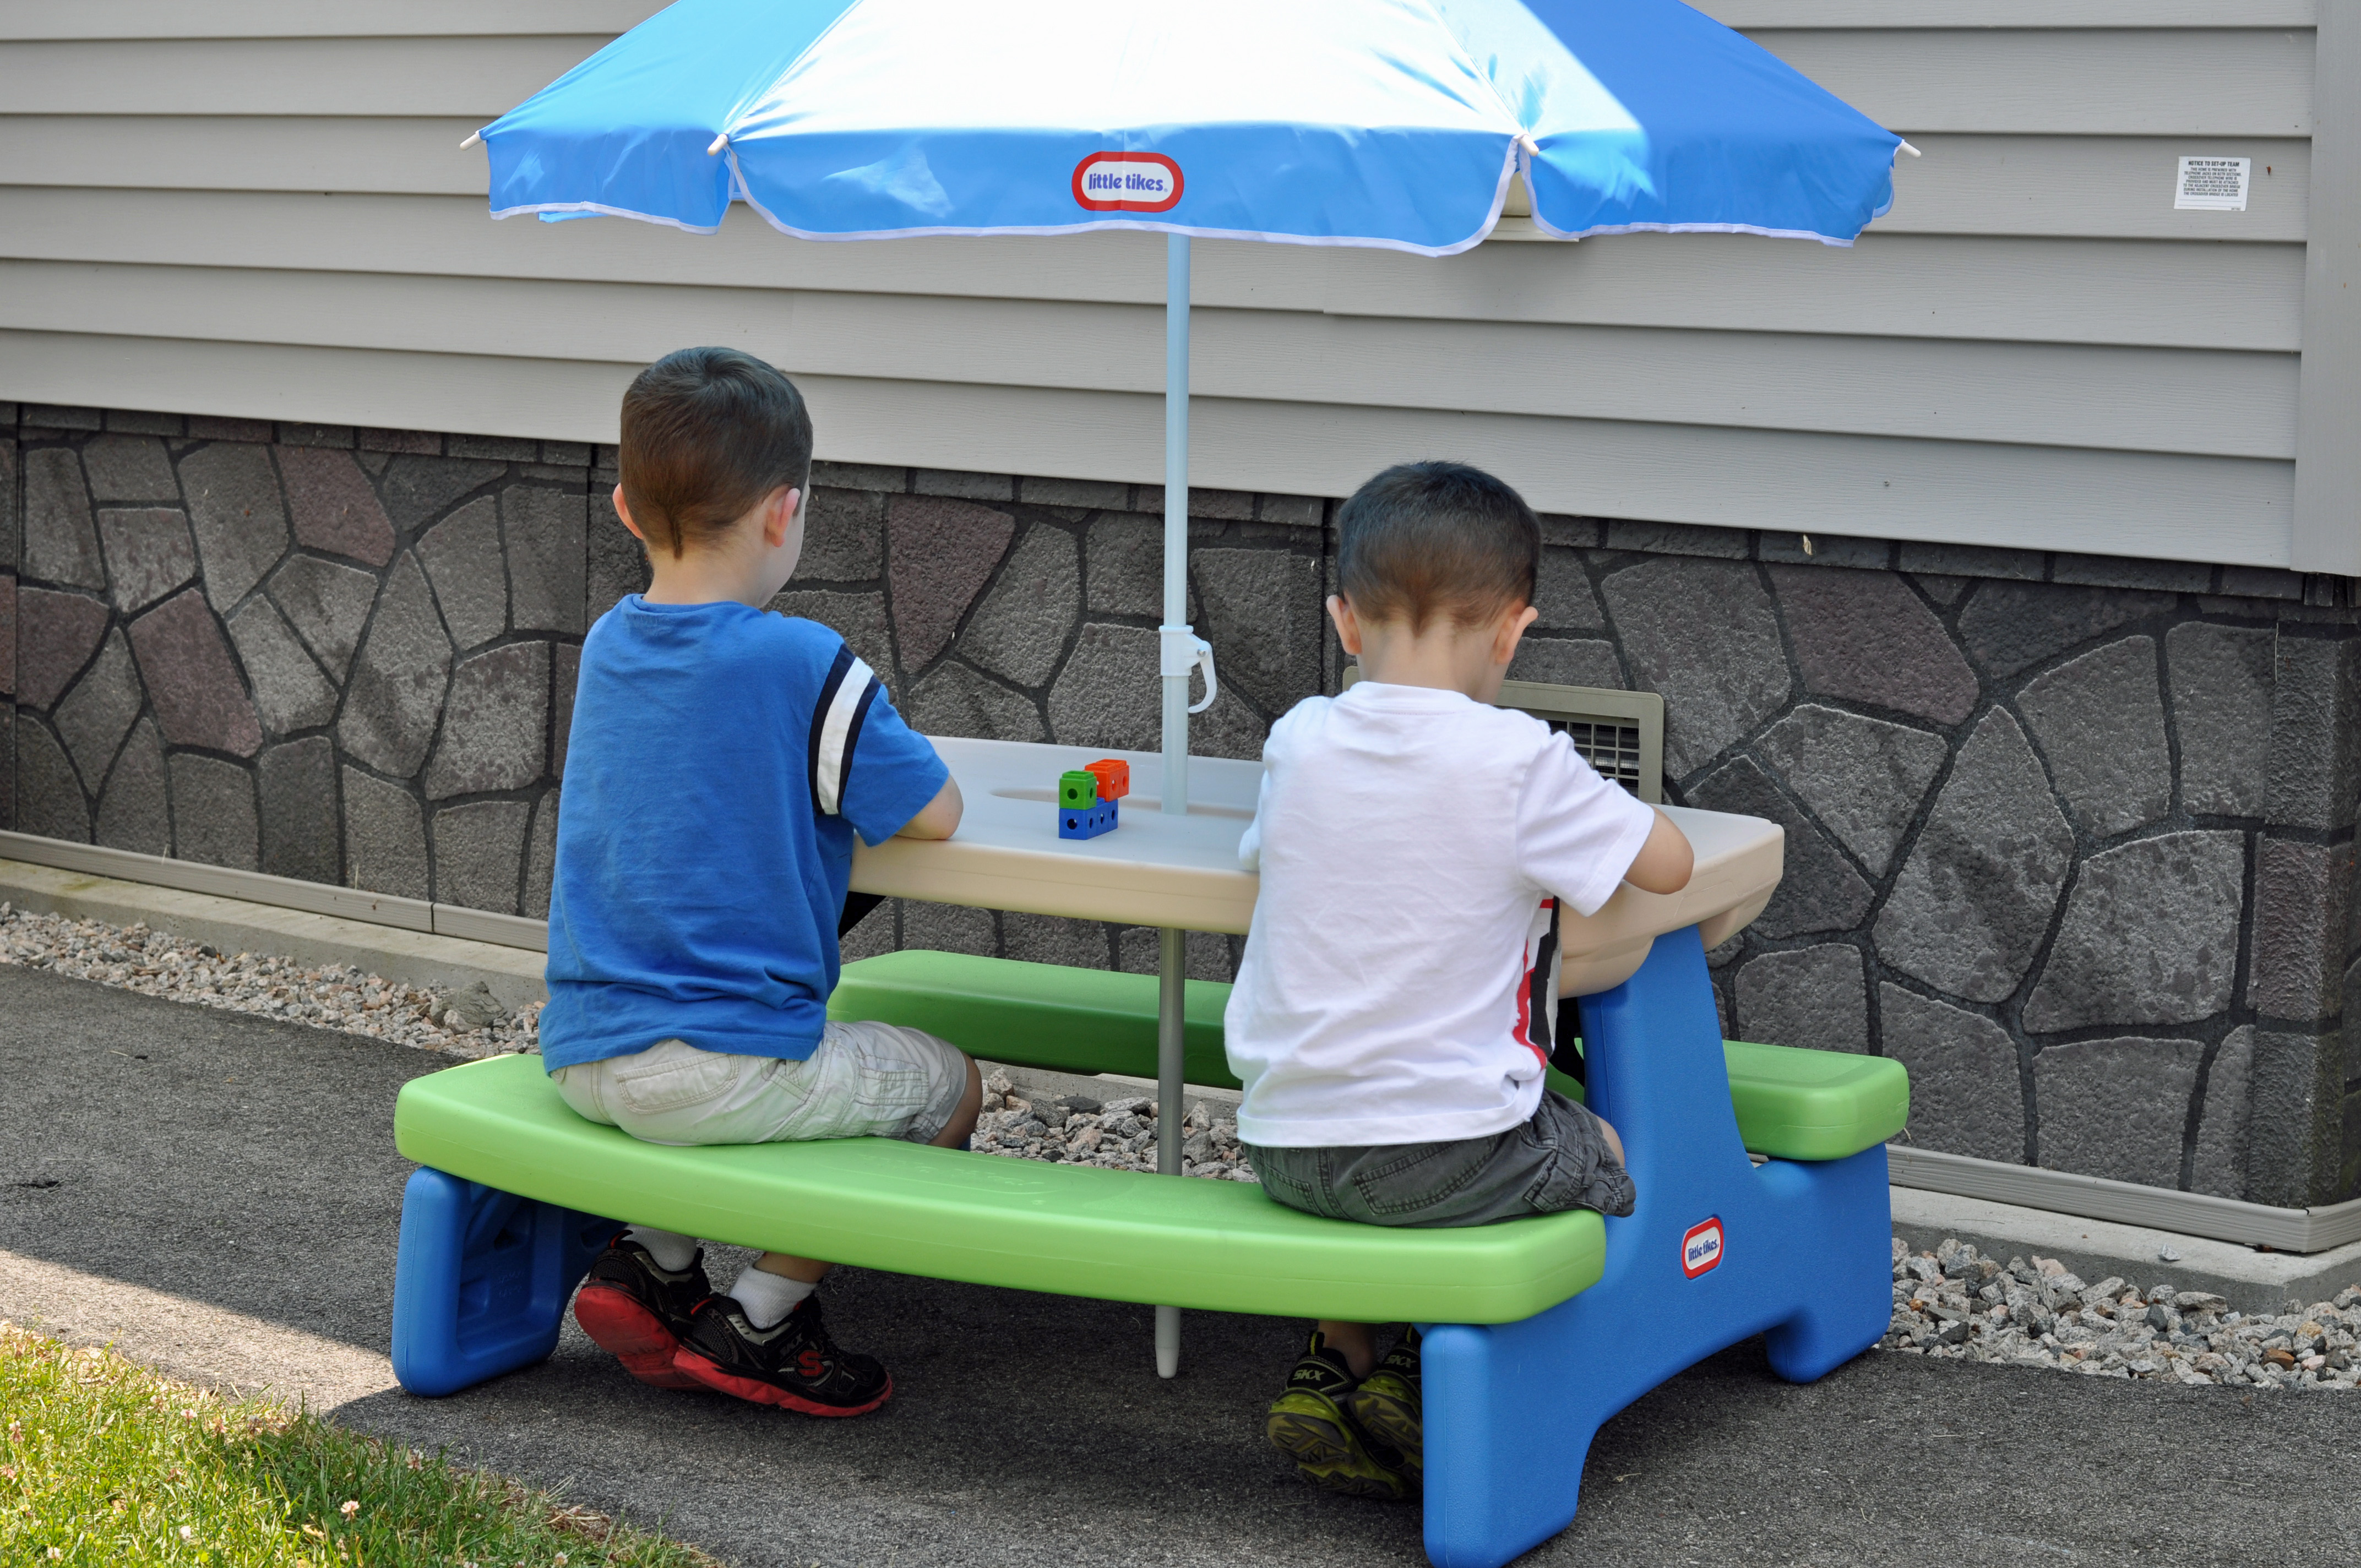 Little Tikes Junior Picnic Table : Little tikes picnic table instructions adrian s